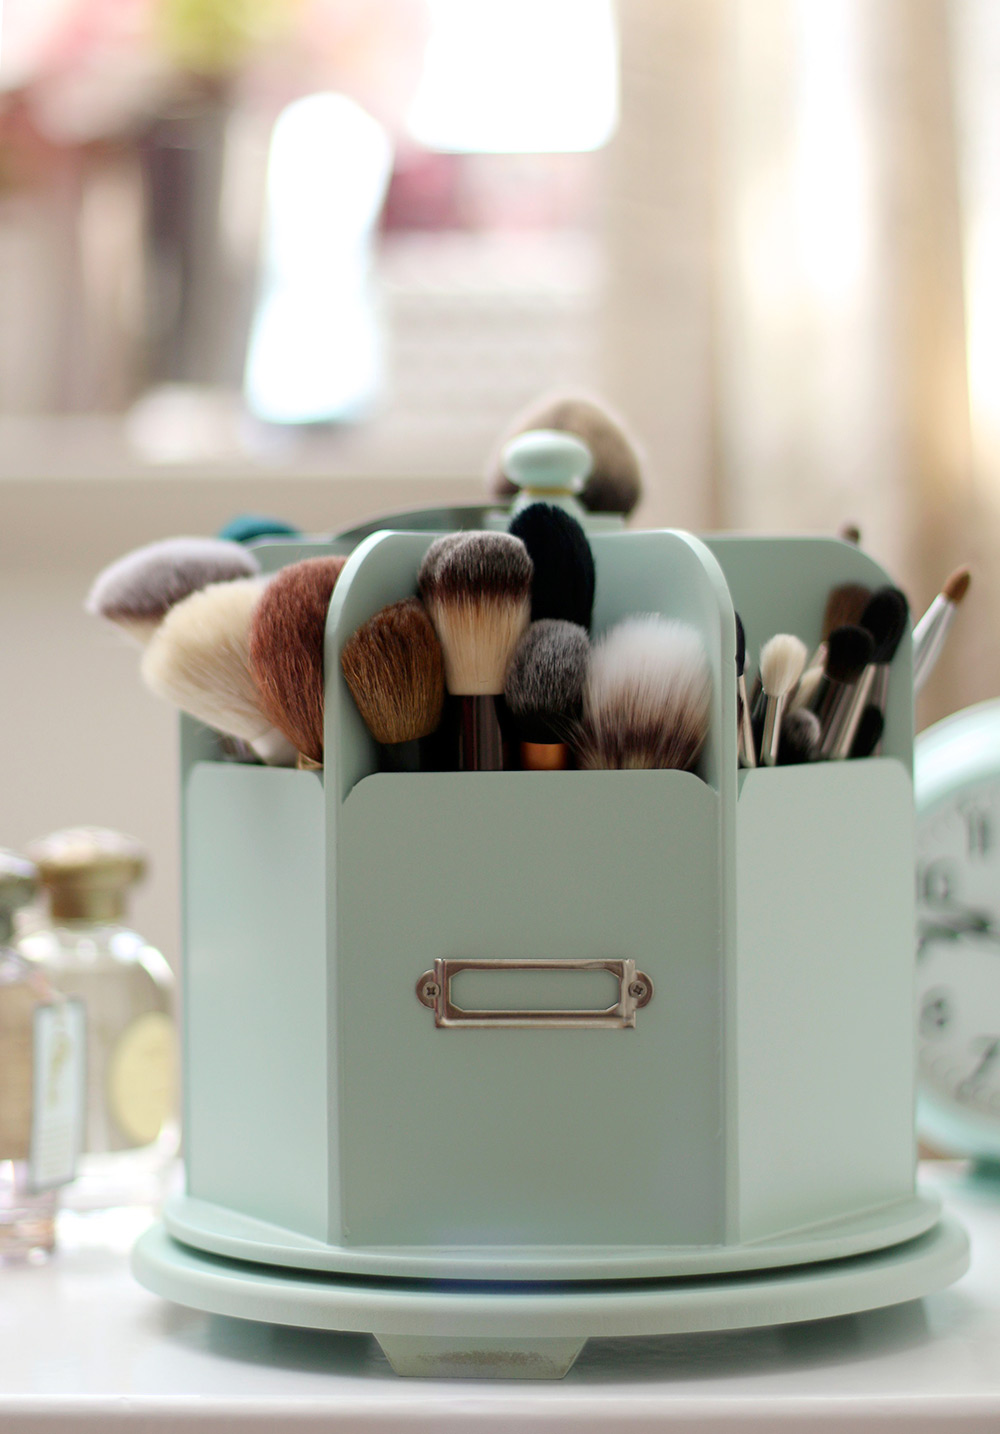 Whatu0027s Your Current Makeup Brush Storage Situation?